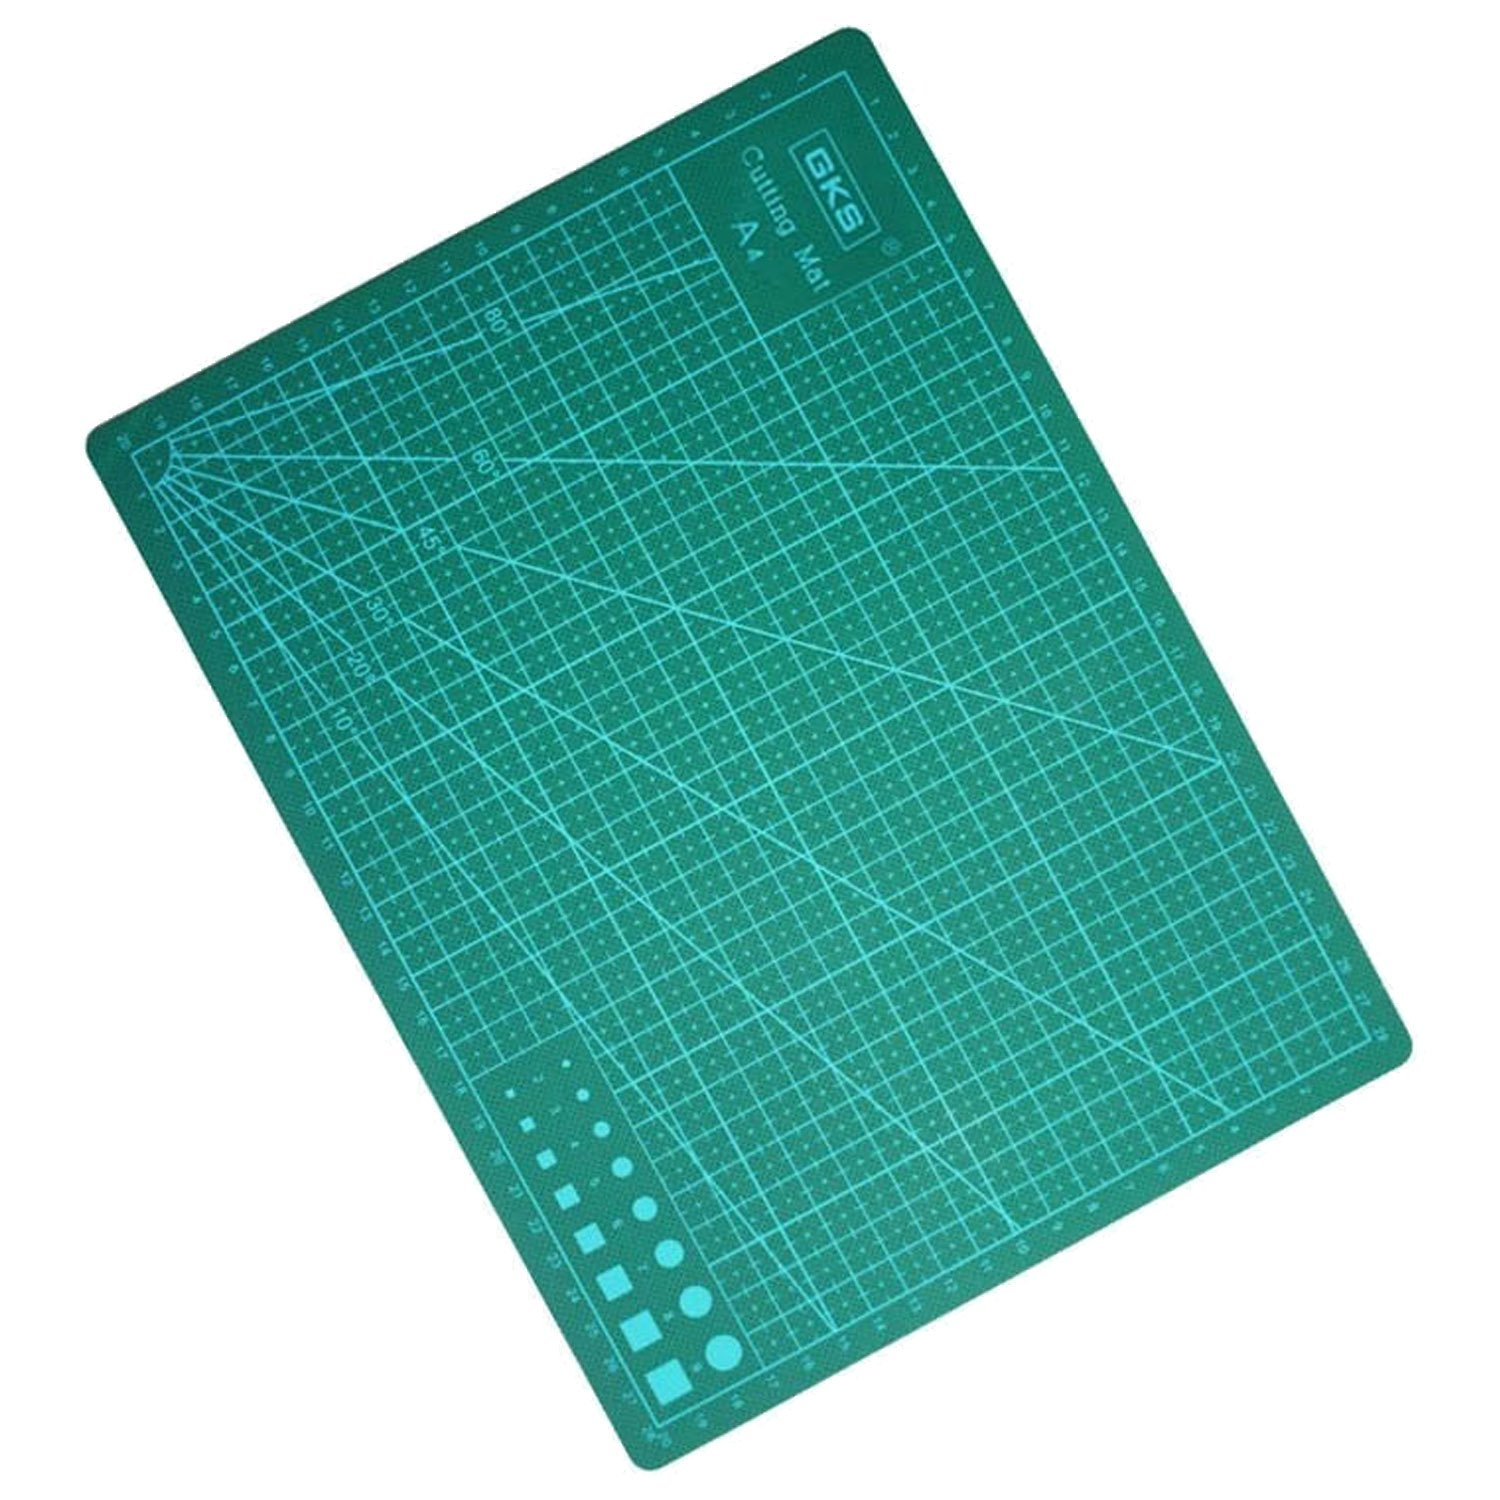 Elisona-A4 Size Anti-slip PVC Professional Self Healing Cutting Mat for Quilting Sewing Craft Cutting Green